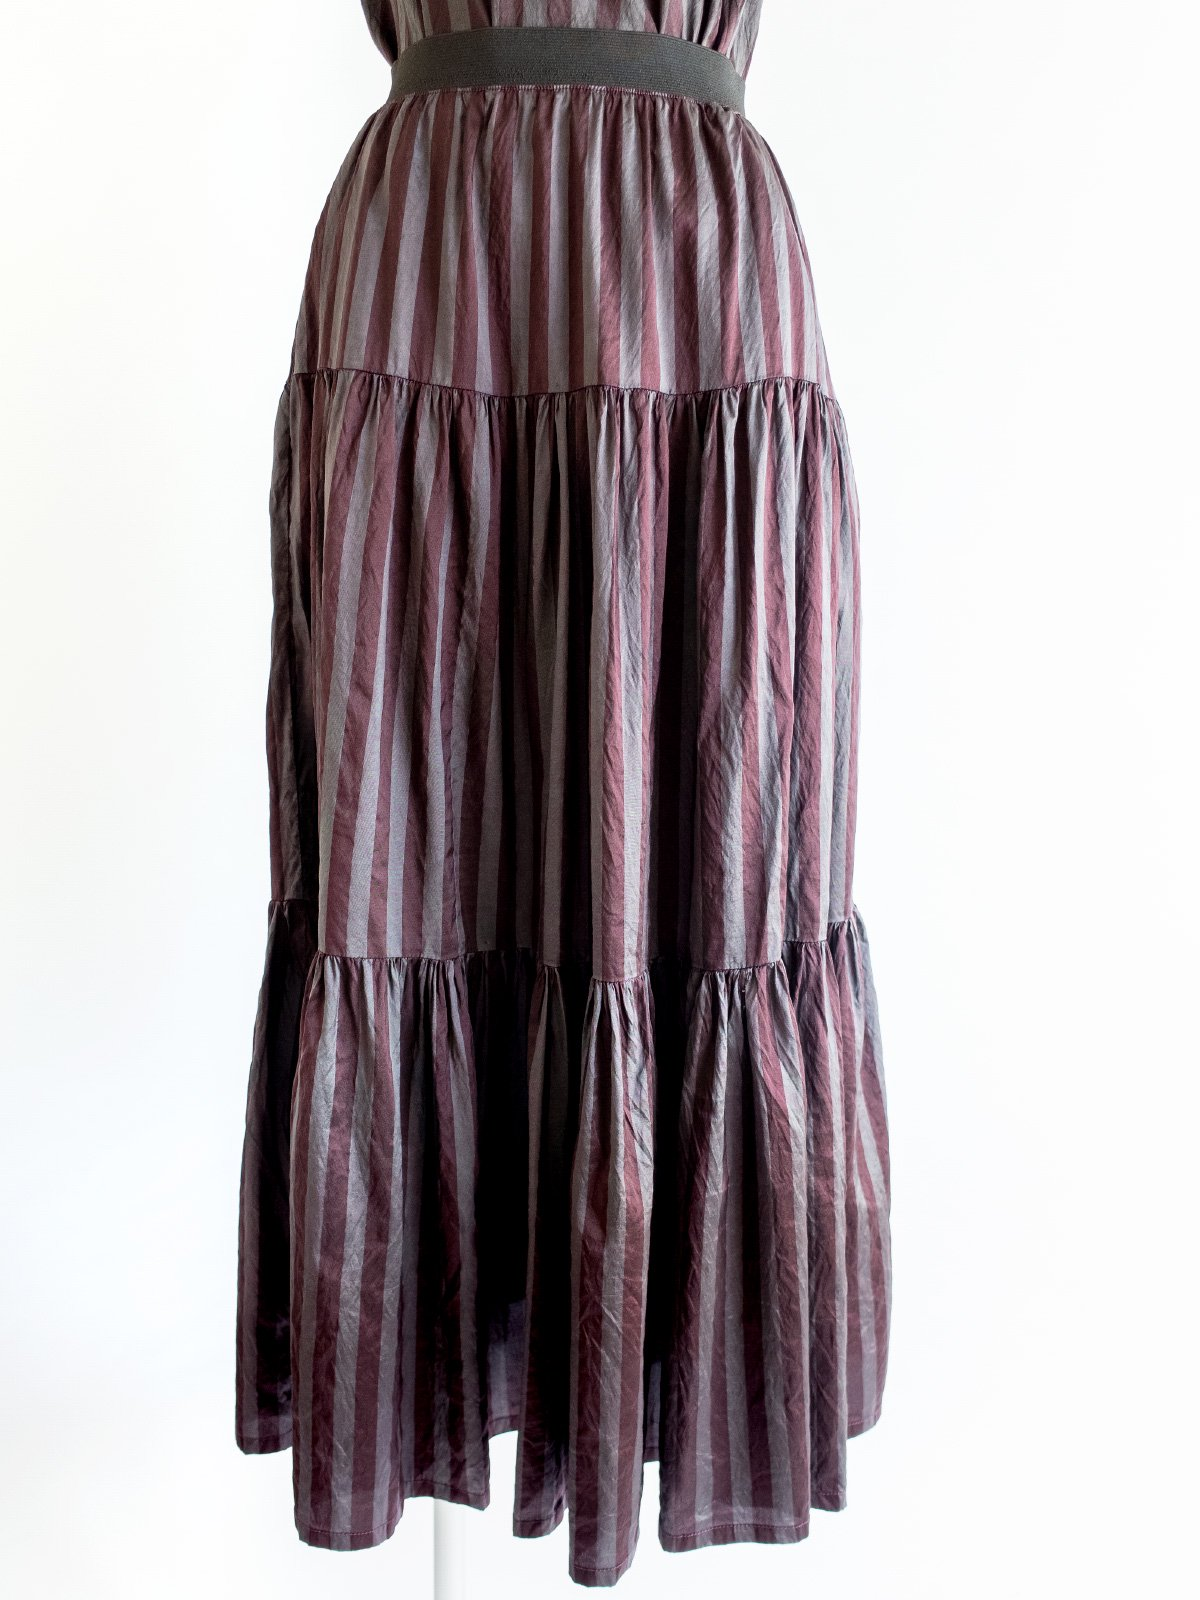 Tiered Skirt / stripe dye